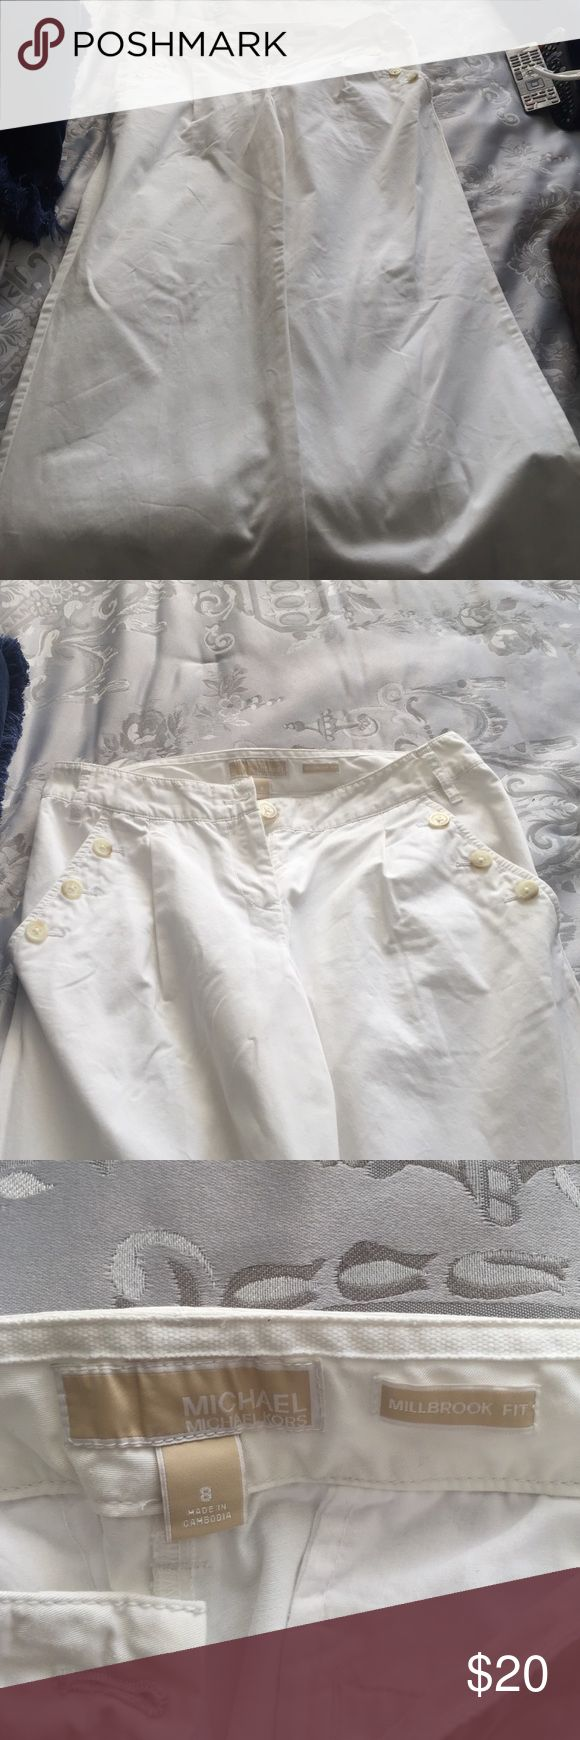 Michael Kors white beach pant Michael Kors white beach pant size 8. Super comfortable and great for spring and summer. I loved wearing them while in Florida on the beach. KORS Michael Kors Pants Boot Cut & Flare